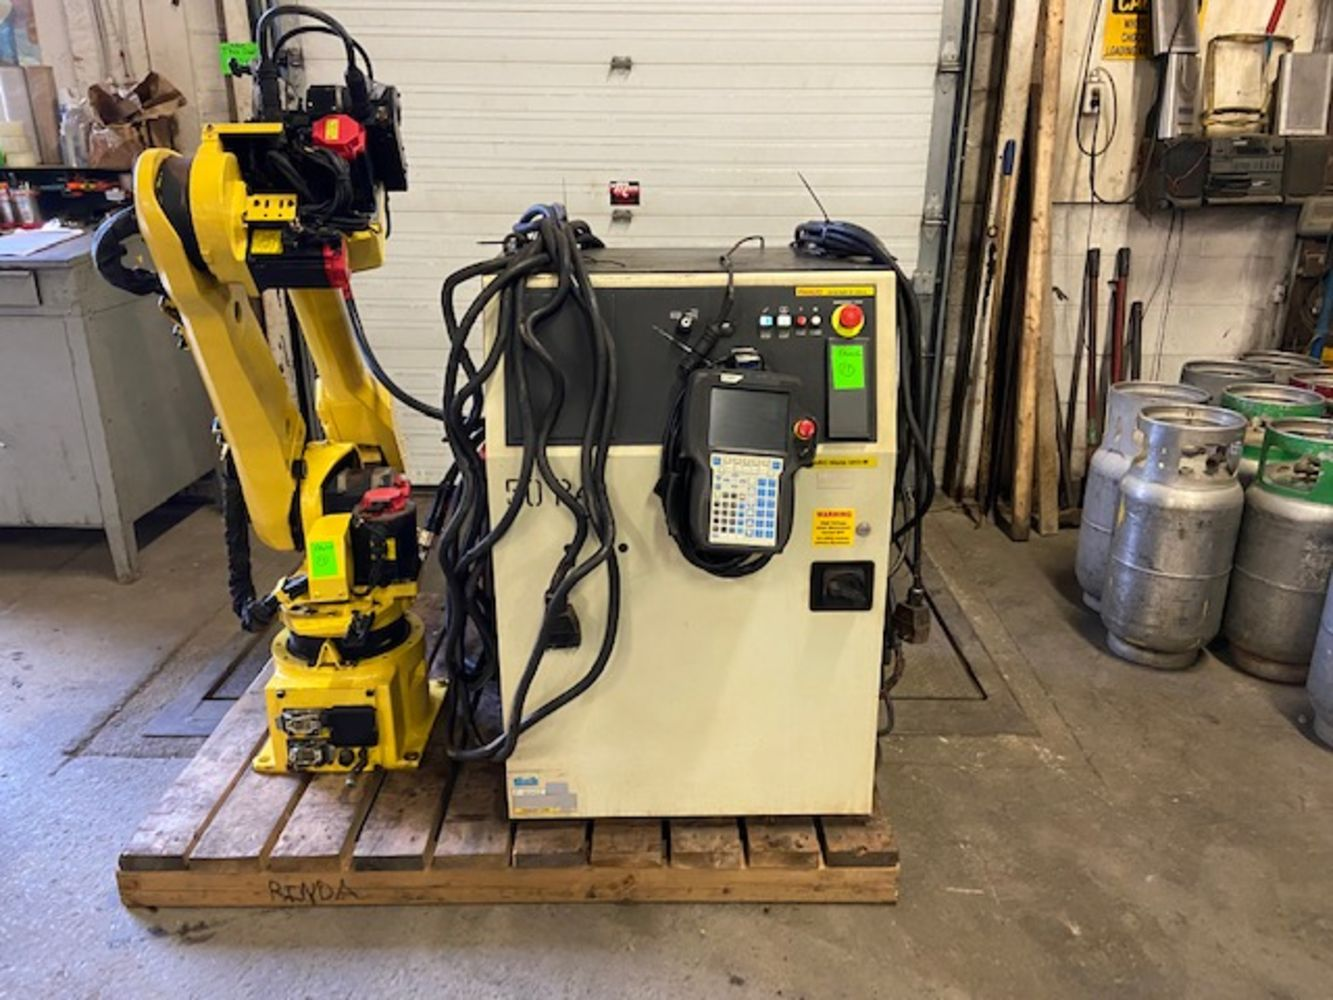 Auction of Global Welding Specialist – MINT Weld Robots, Forklifts, Mfg, Cabinets, Fab, Hoists & More ***NEW LOTS ADDED DAILY